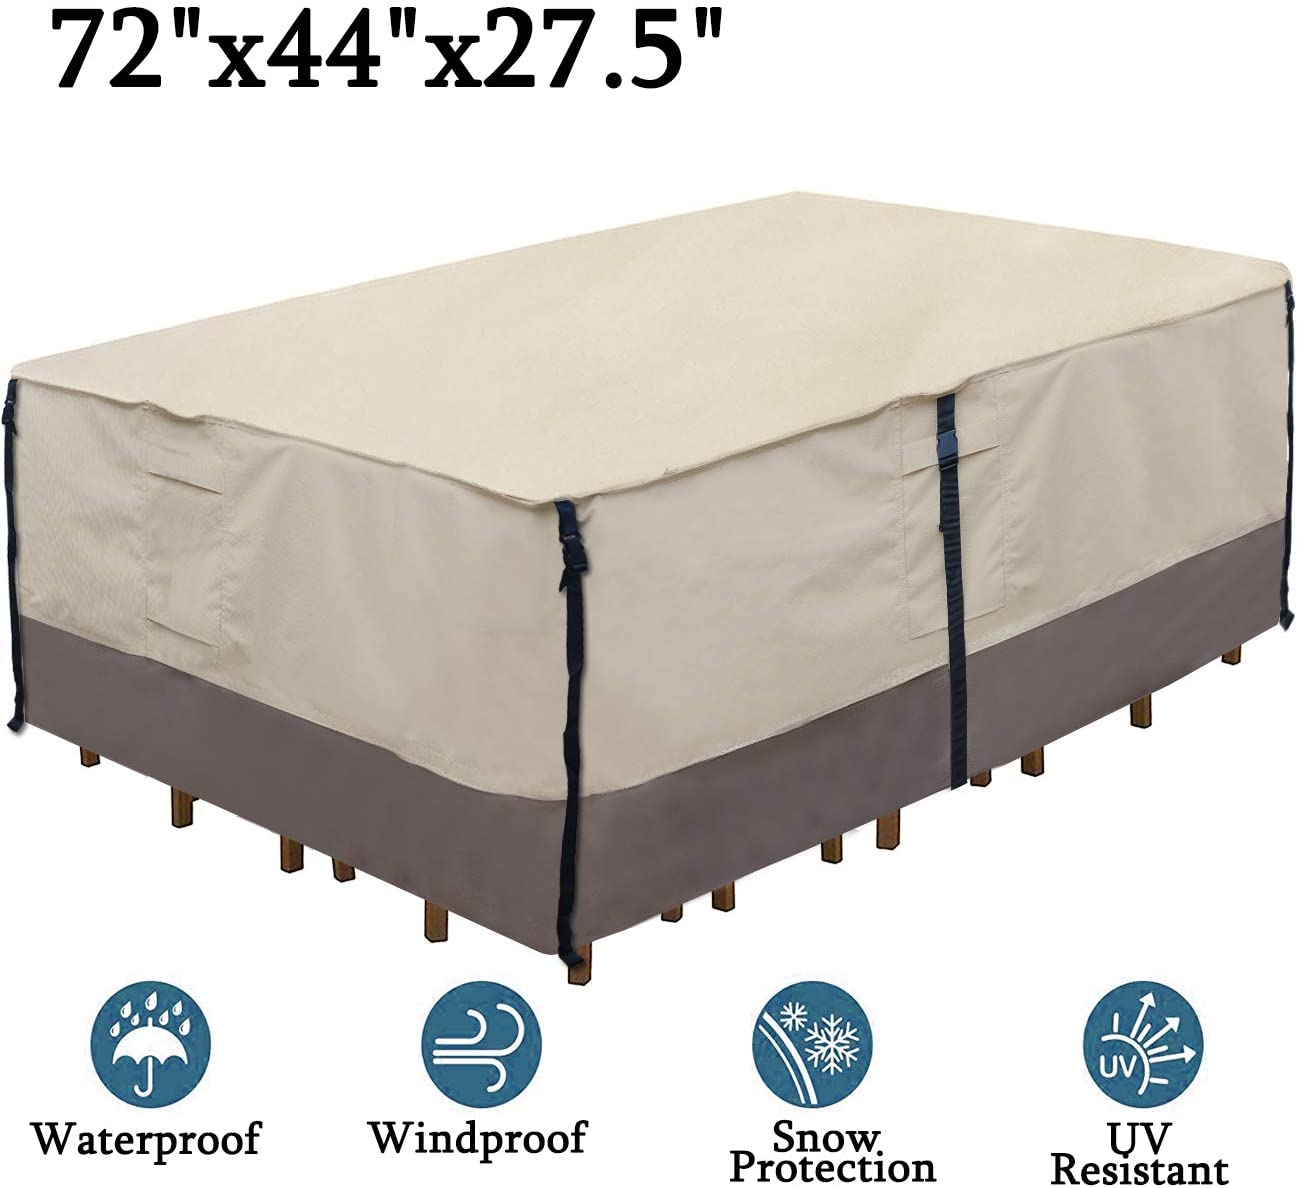 Ogrmar Heavy Duty 600D Patio Table Cover Waterproof Rectangle Patio Furniture Cover Outdoor Dining Table Chair Set Cover 72 x44 x27.5